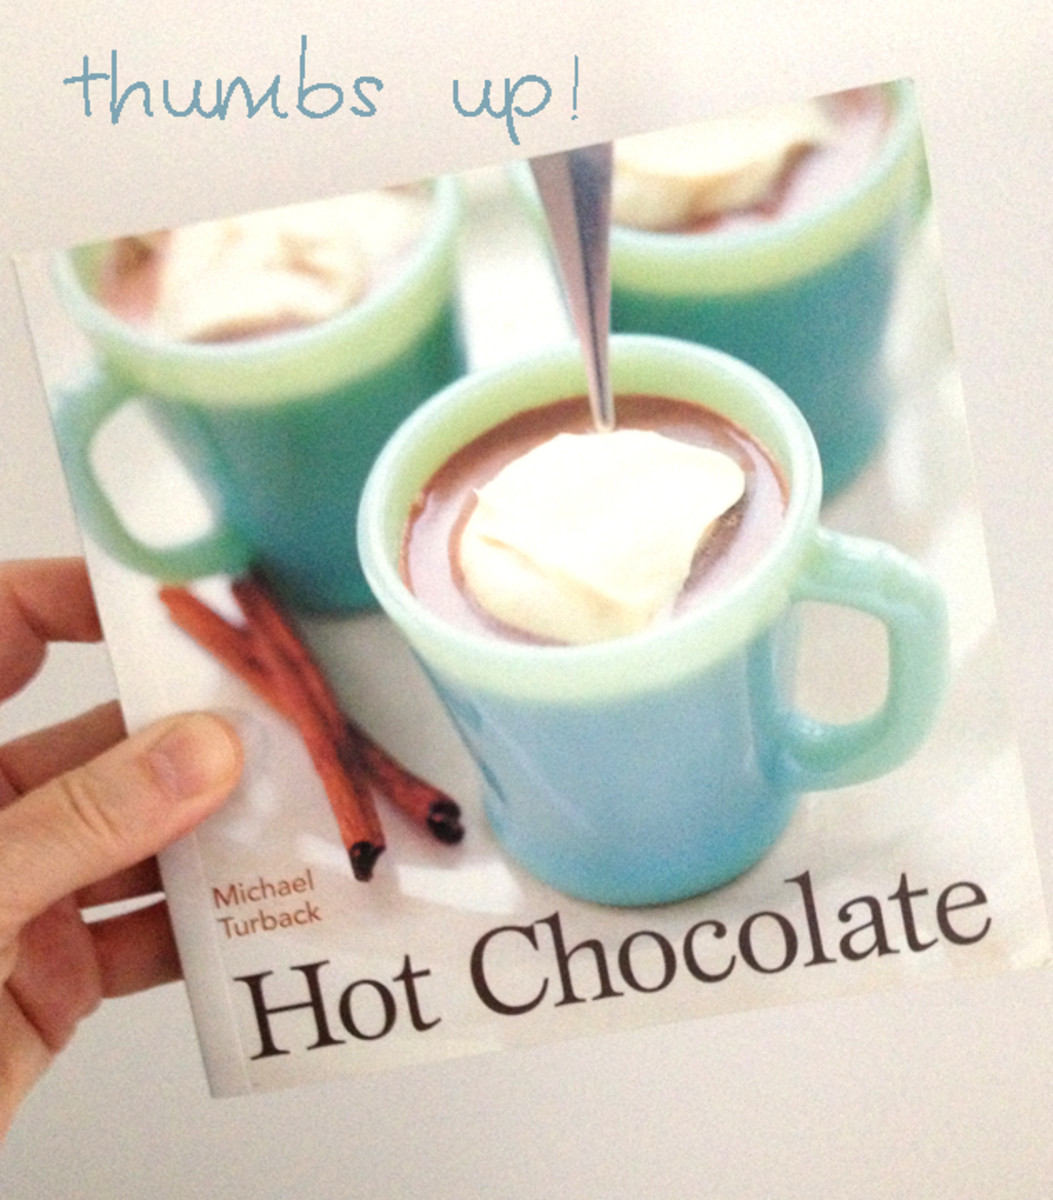 This is one of my favorite hot chocolate cookbooks. There are some very creative drinks in here and many of them could be served in fun ways. I highly recommend this book - another one of those fabulous gifts from my sister-in-law!